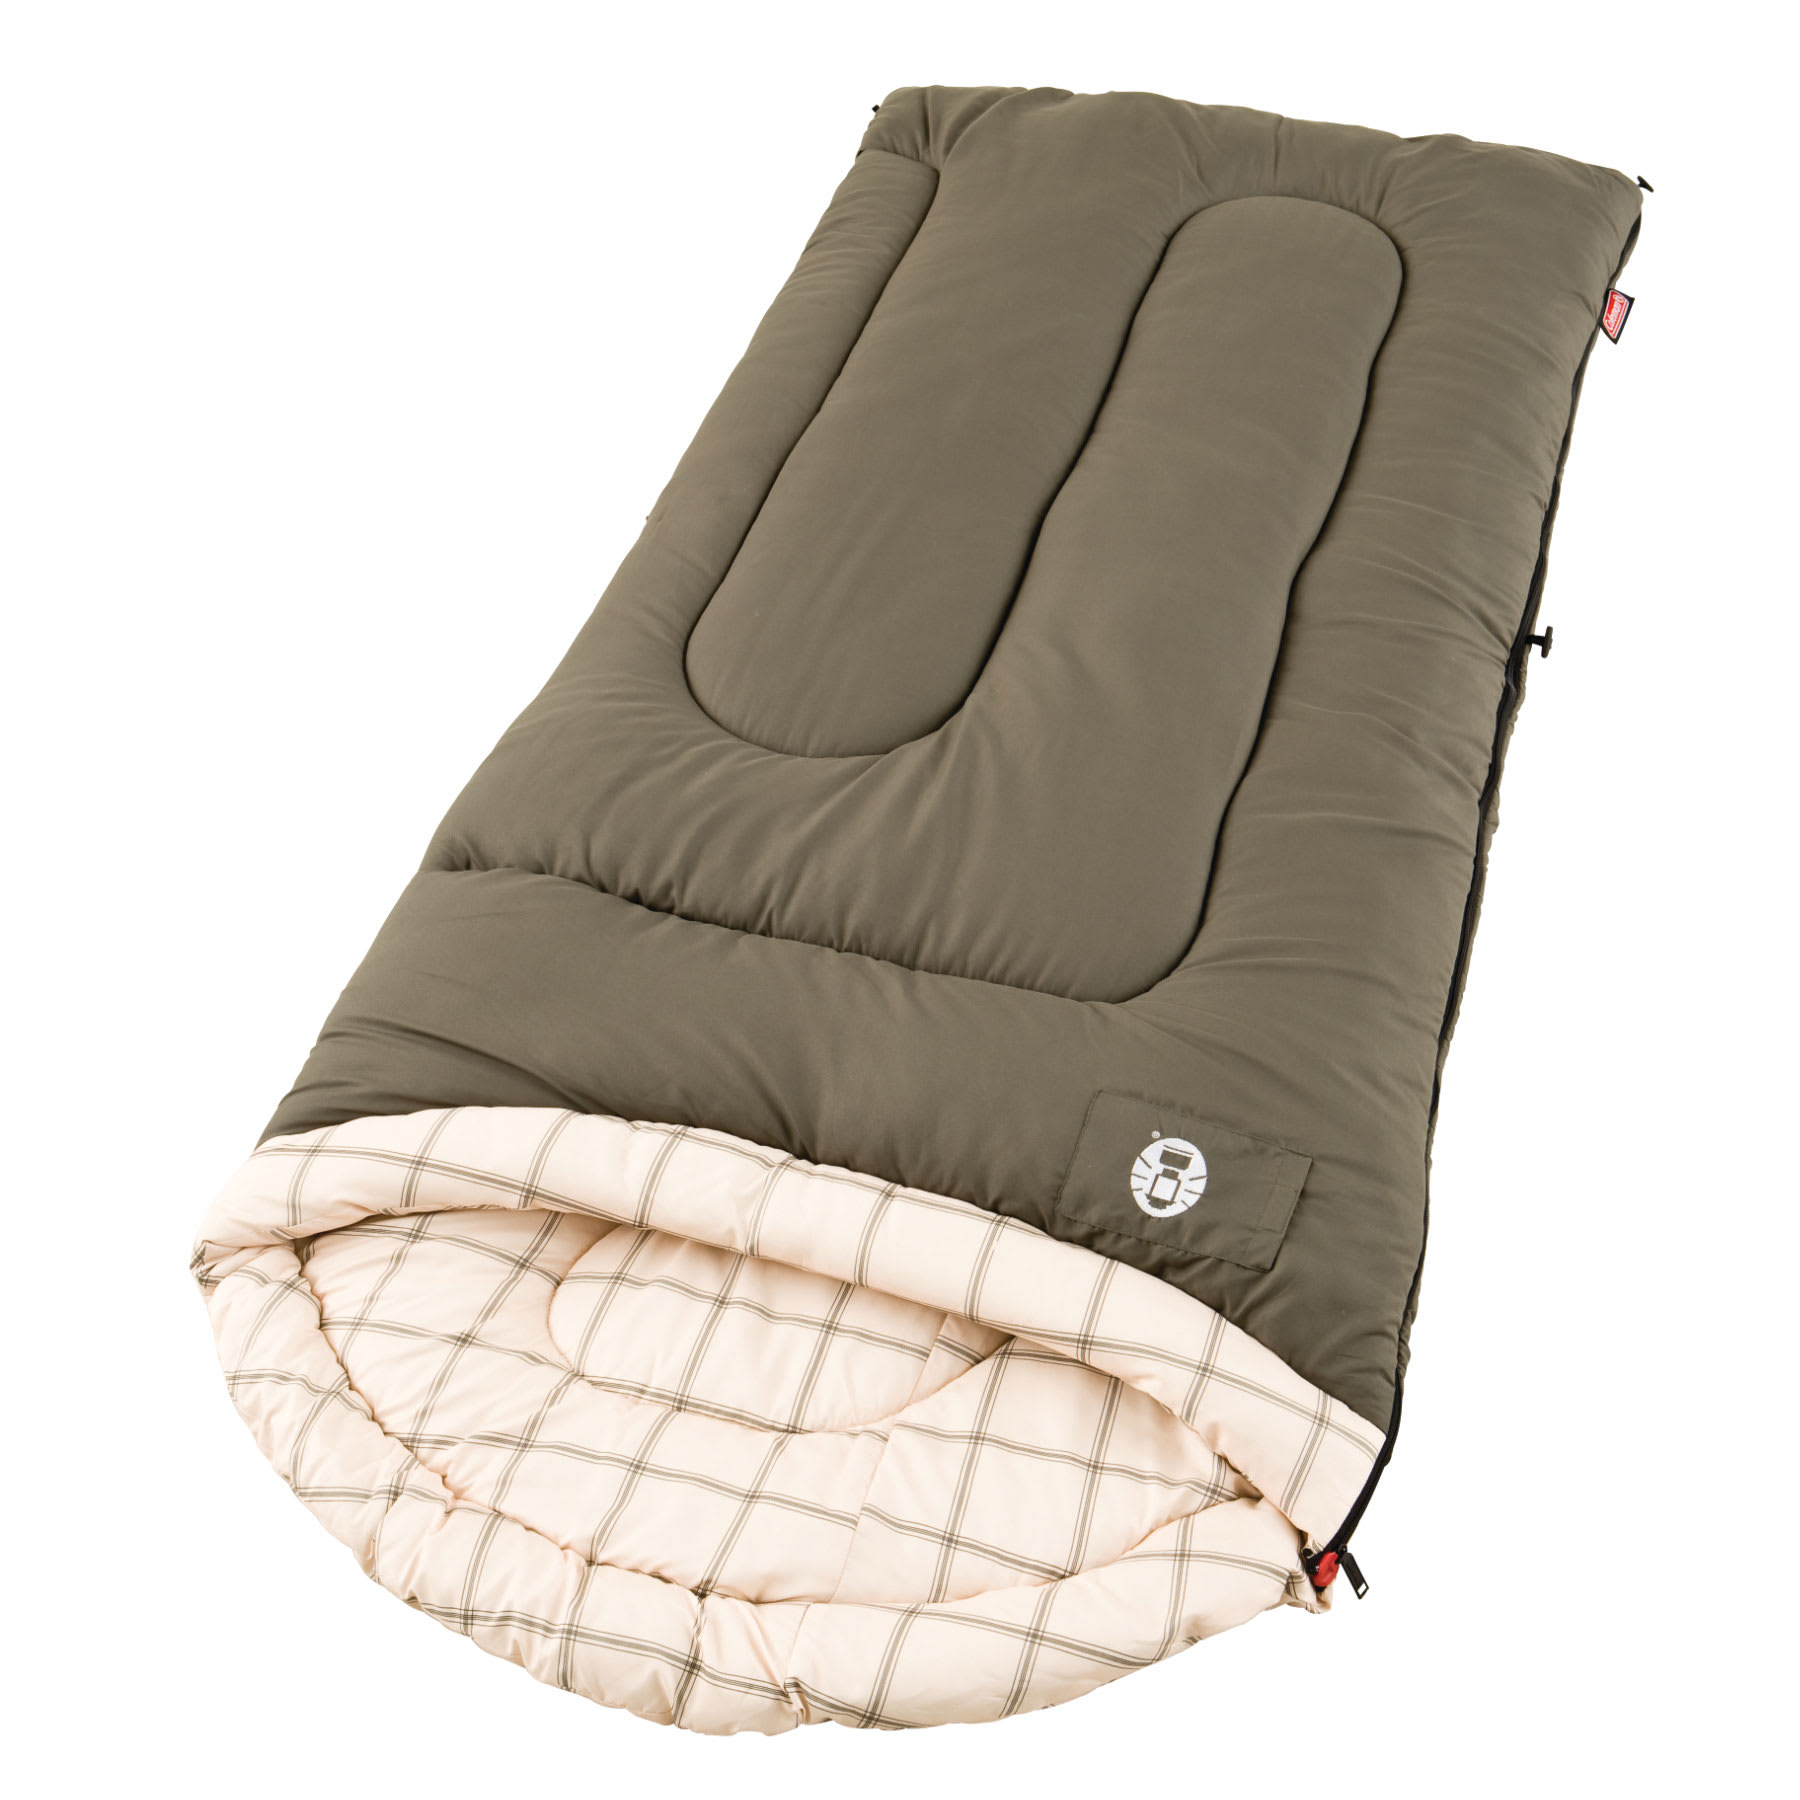 Shop for Coleman Calgary Cold Weather Sleeping Bag Tan